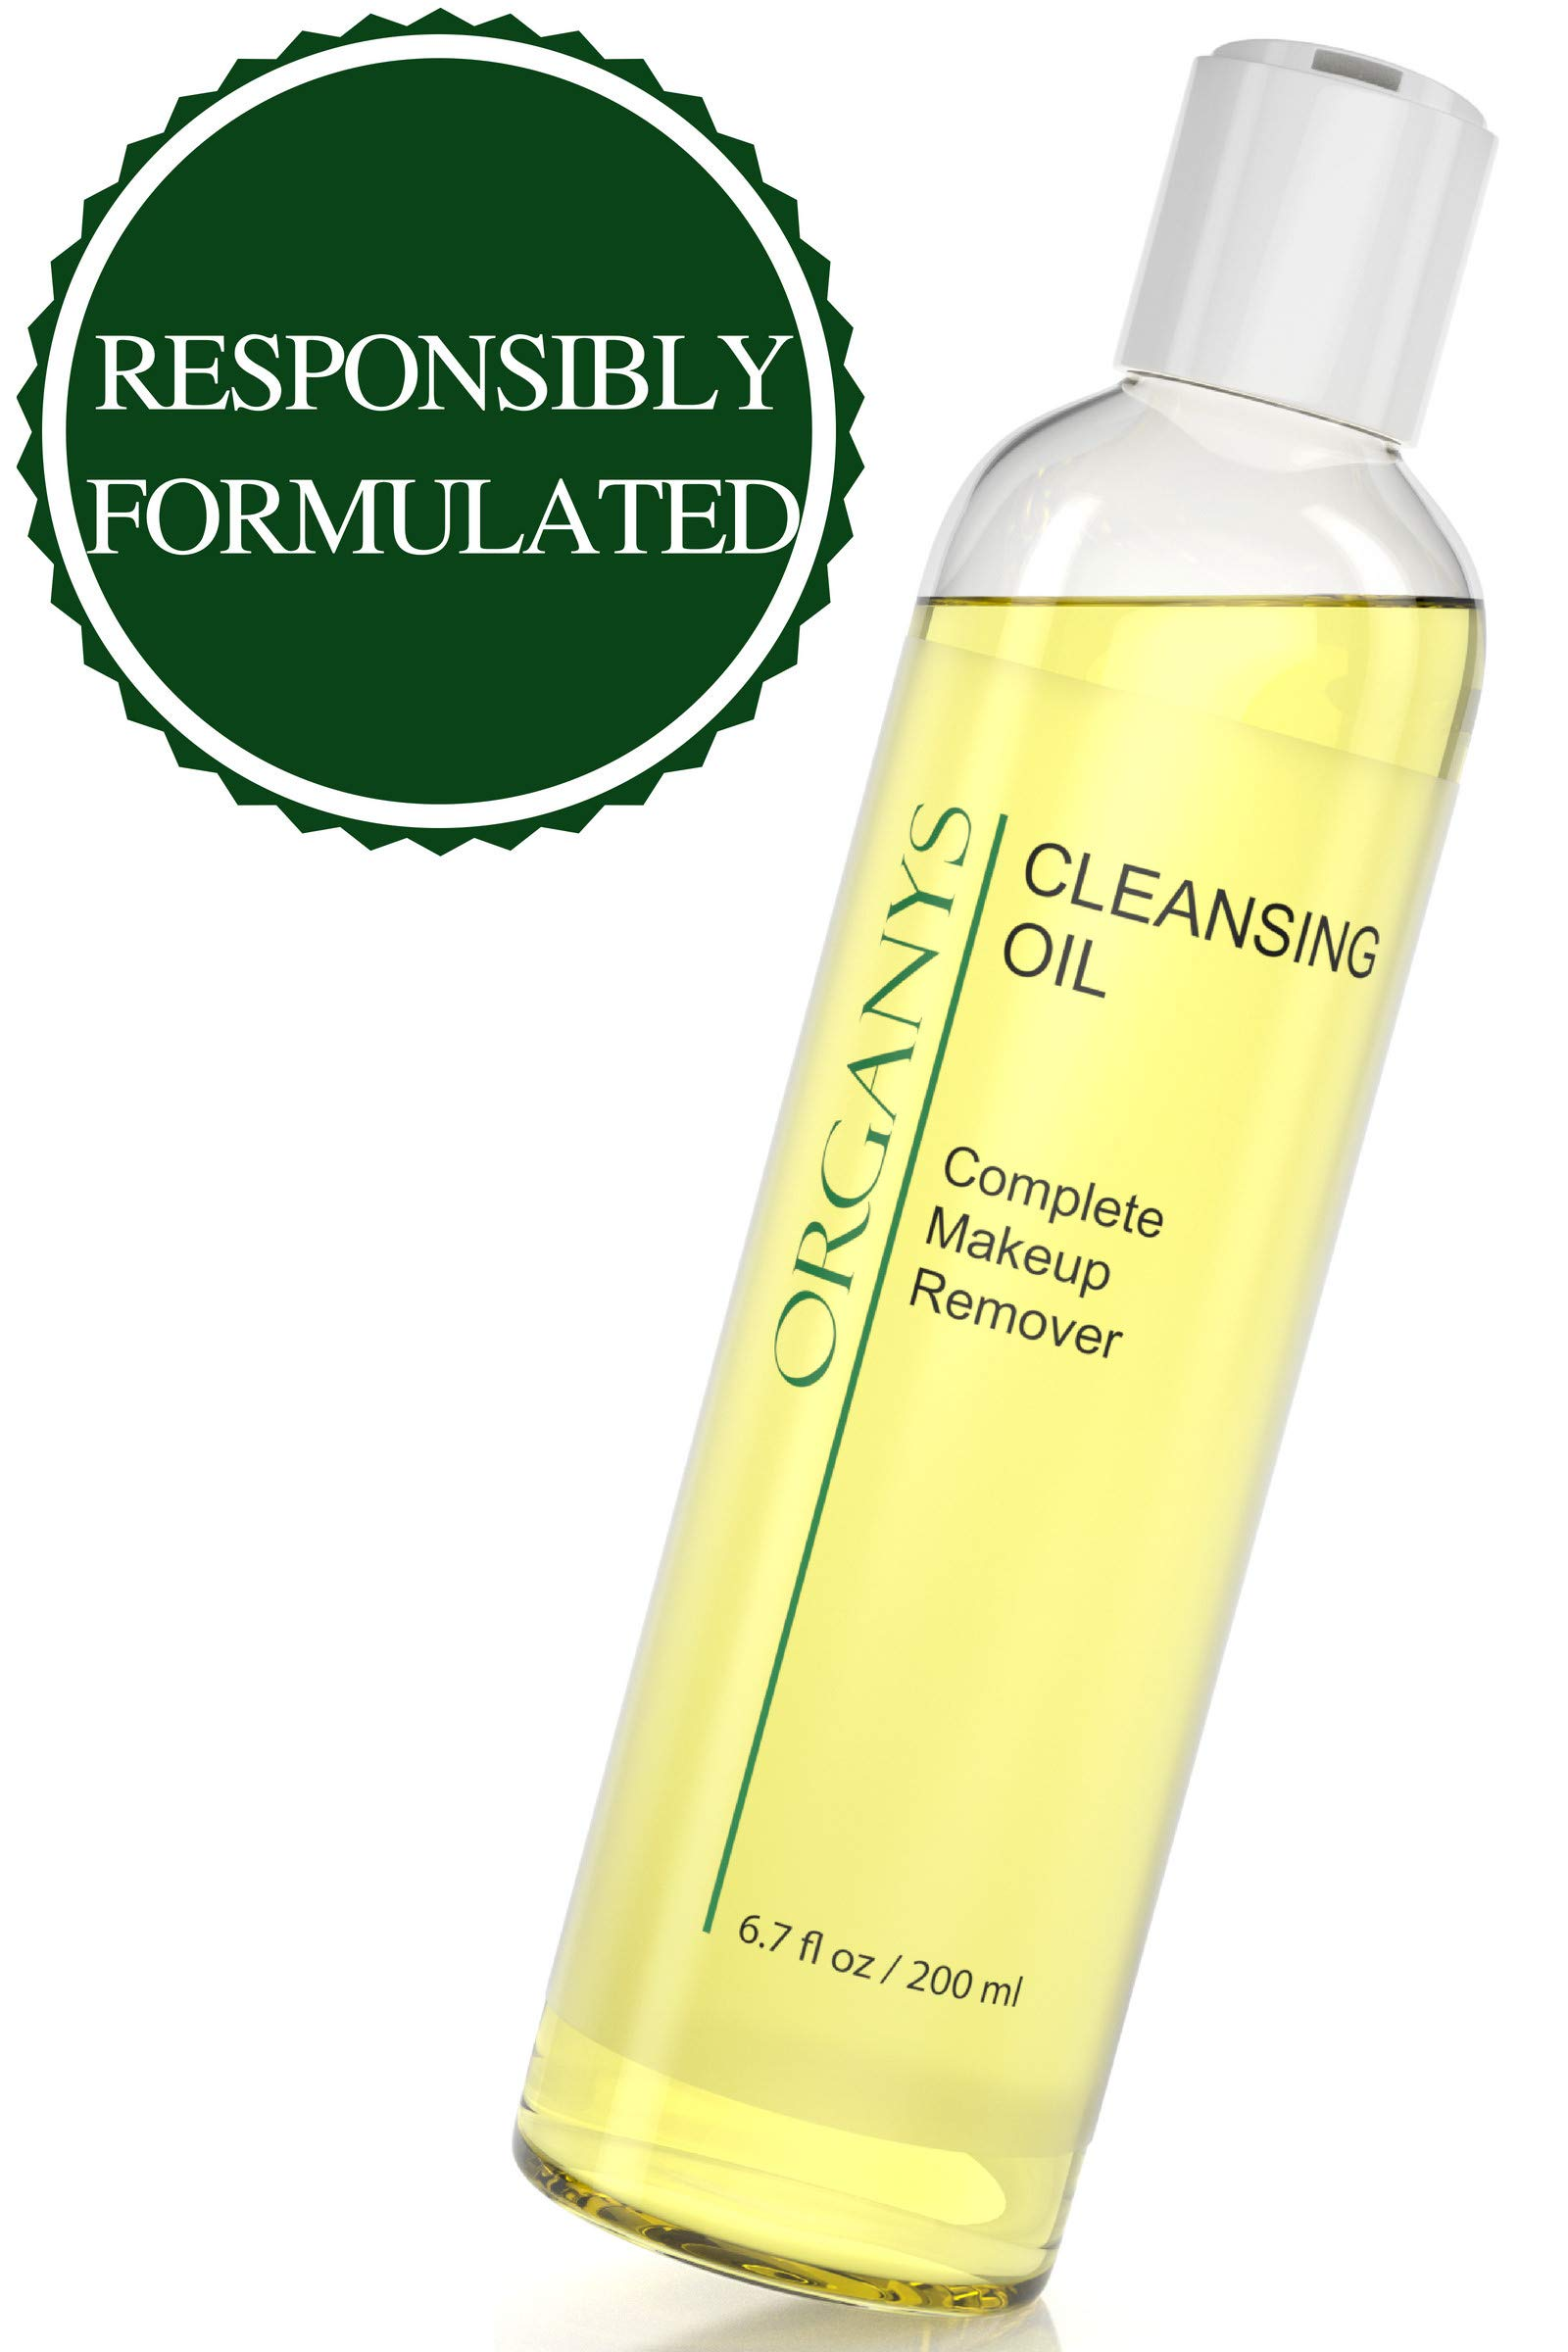 Organys Cleansing Oil   Makeup Remover Best Natural Anti Aging Gentle Daily  Face Wash Deep Cleanser ae2e3b7de7